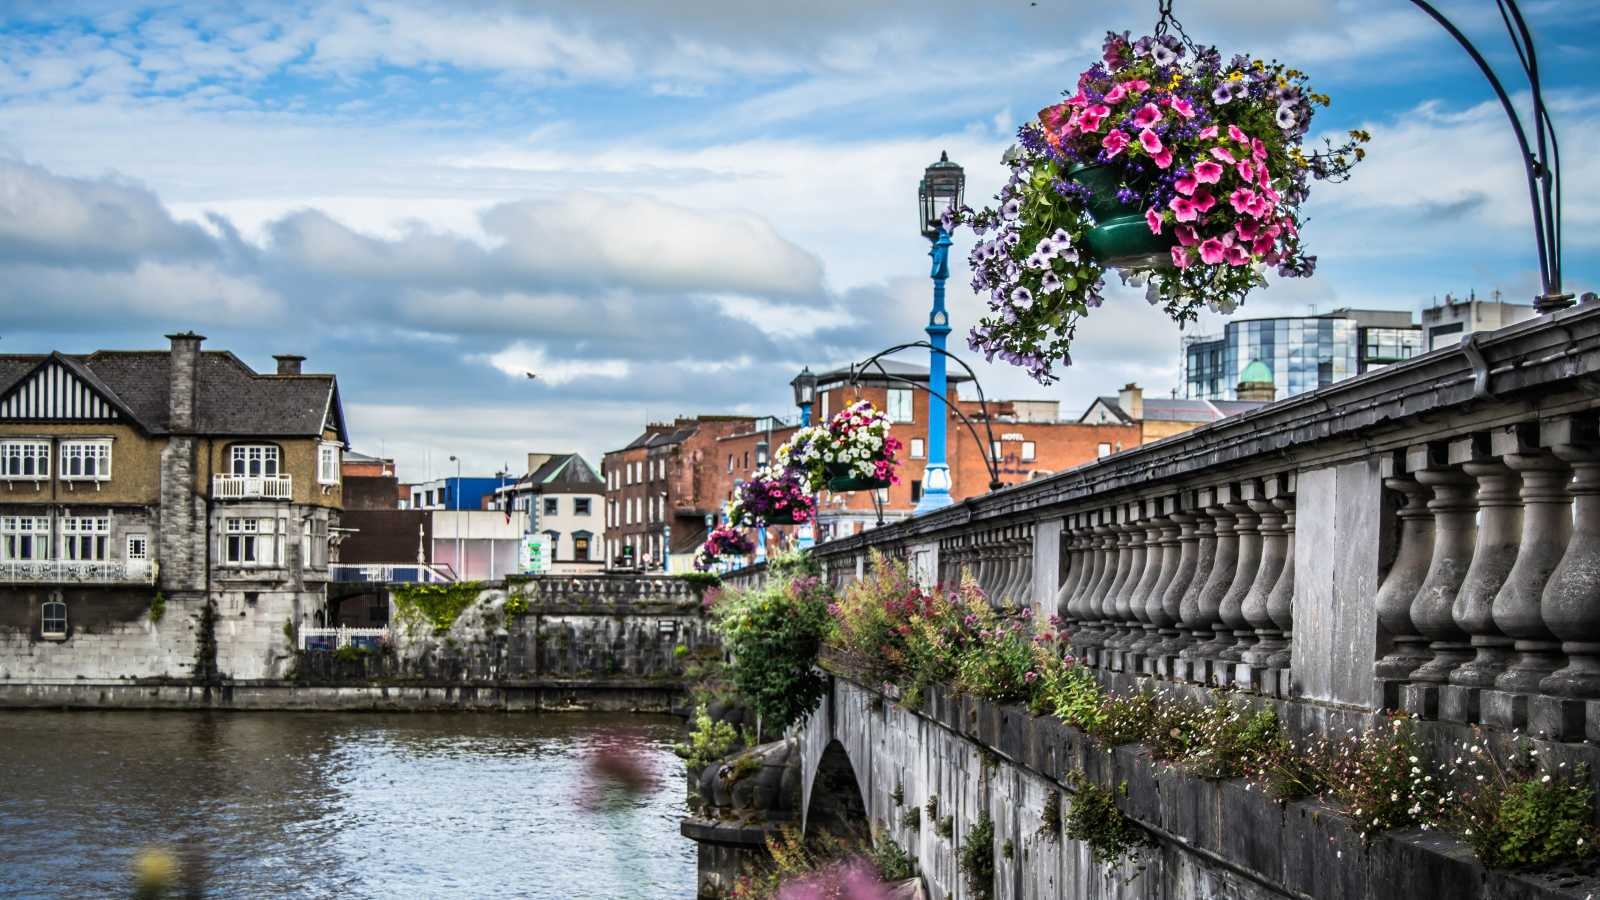 See the city of Limerick, pictured here, on a Limerick vacation